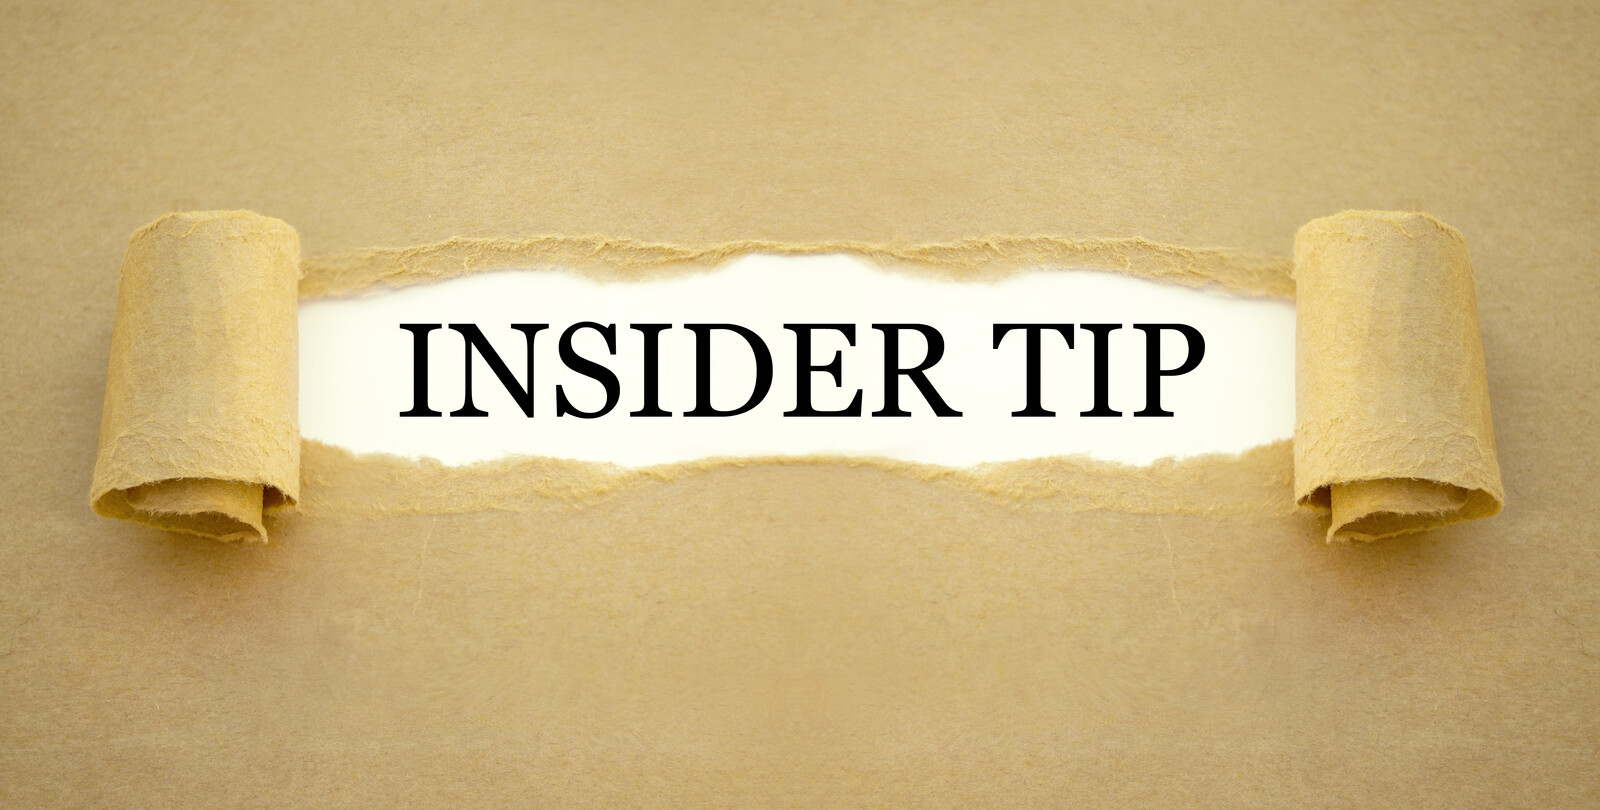 Brown paper that shows a ripped hole showing insider tip